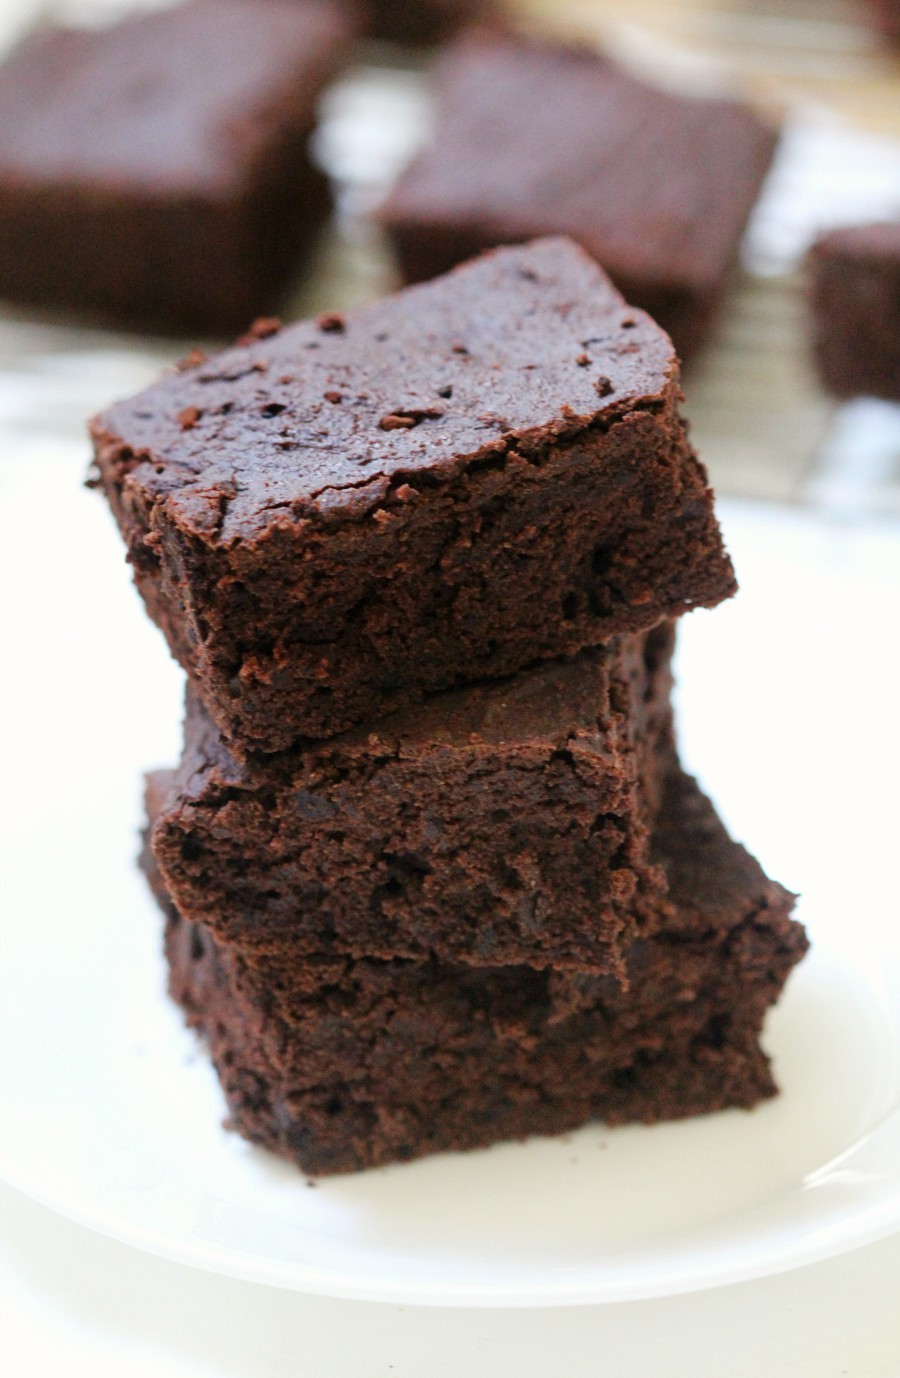 Easy Thick & Fudgy One-Bowl Gluten-Free Vegan Brownies (Allergy-Free) A quick & easy recipe for classic Thick & Fudgy One-Bowl Gluten-Free Vegan Brownies! A top 8 allergy-free, oil-free, and sugar-free swap for your favorite rich and decadent chocolate dessert! Kid and mom approved for any party or celebration!